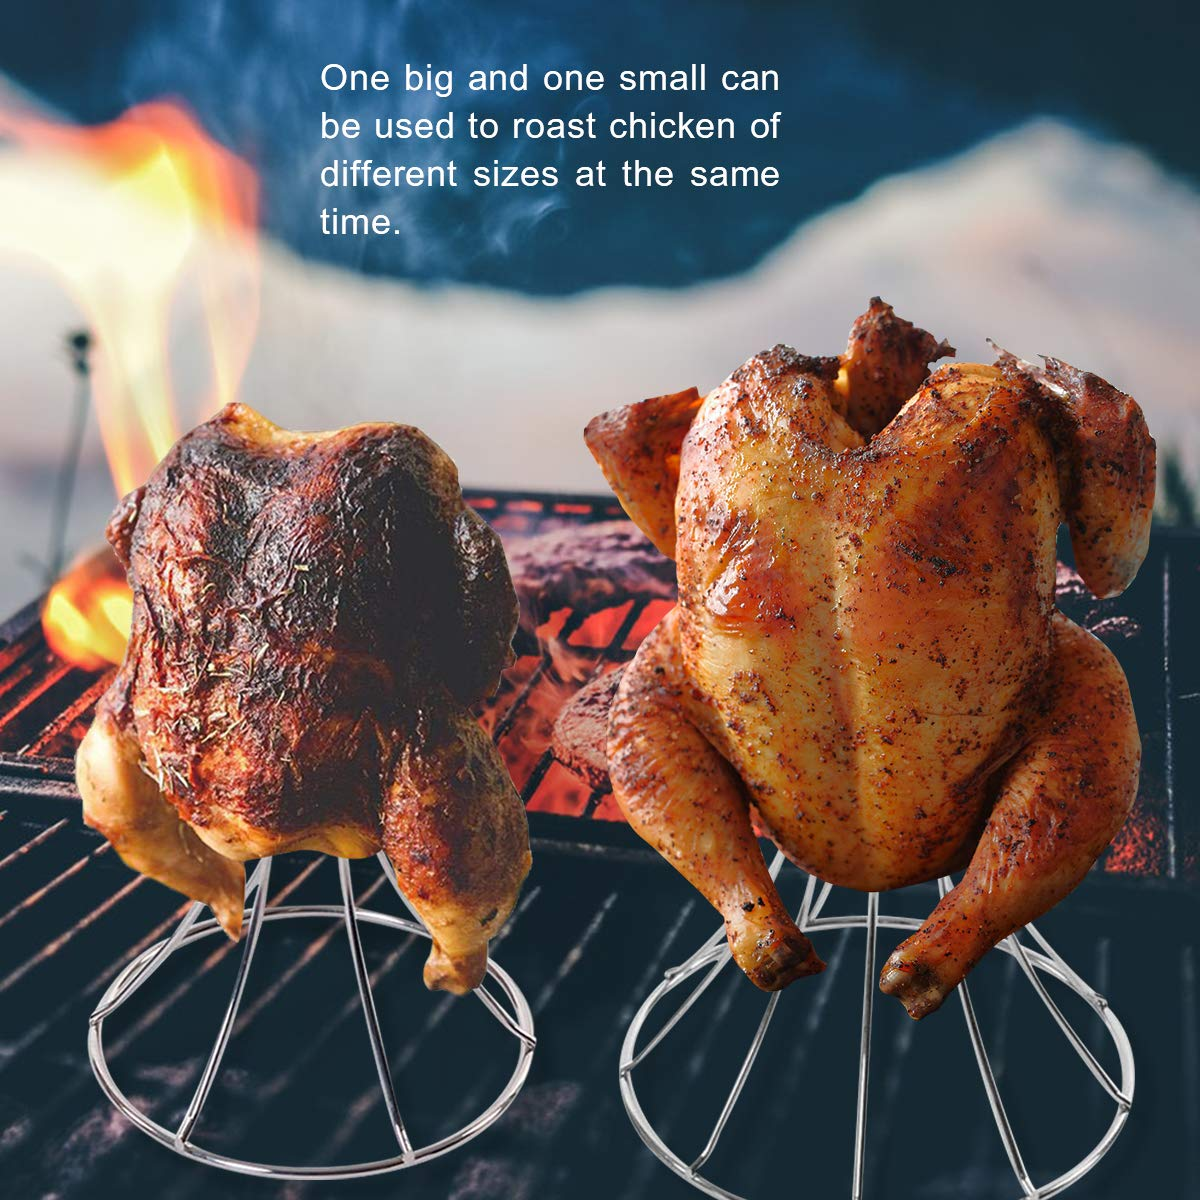 QQMaster Vertical Chicken Roaster Stainless Steel Turkey Rack Roaster Beer Can Meat Rack Holder Non-Stick Poultry Grill Stand Can Hold Turkey Or Cornish Game Hens Fit for Big Green Egg,Kamado Grills by QQMaster (Image #7)